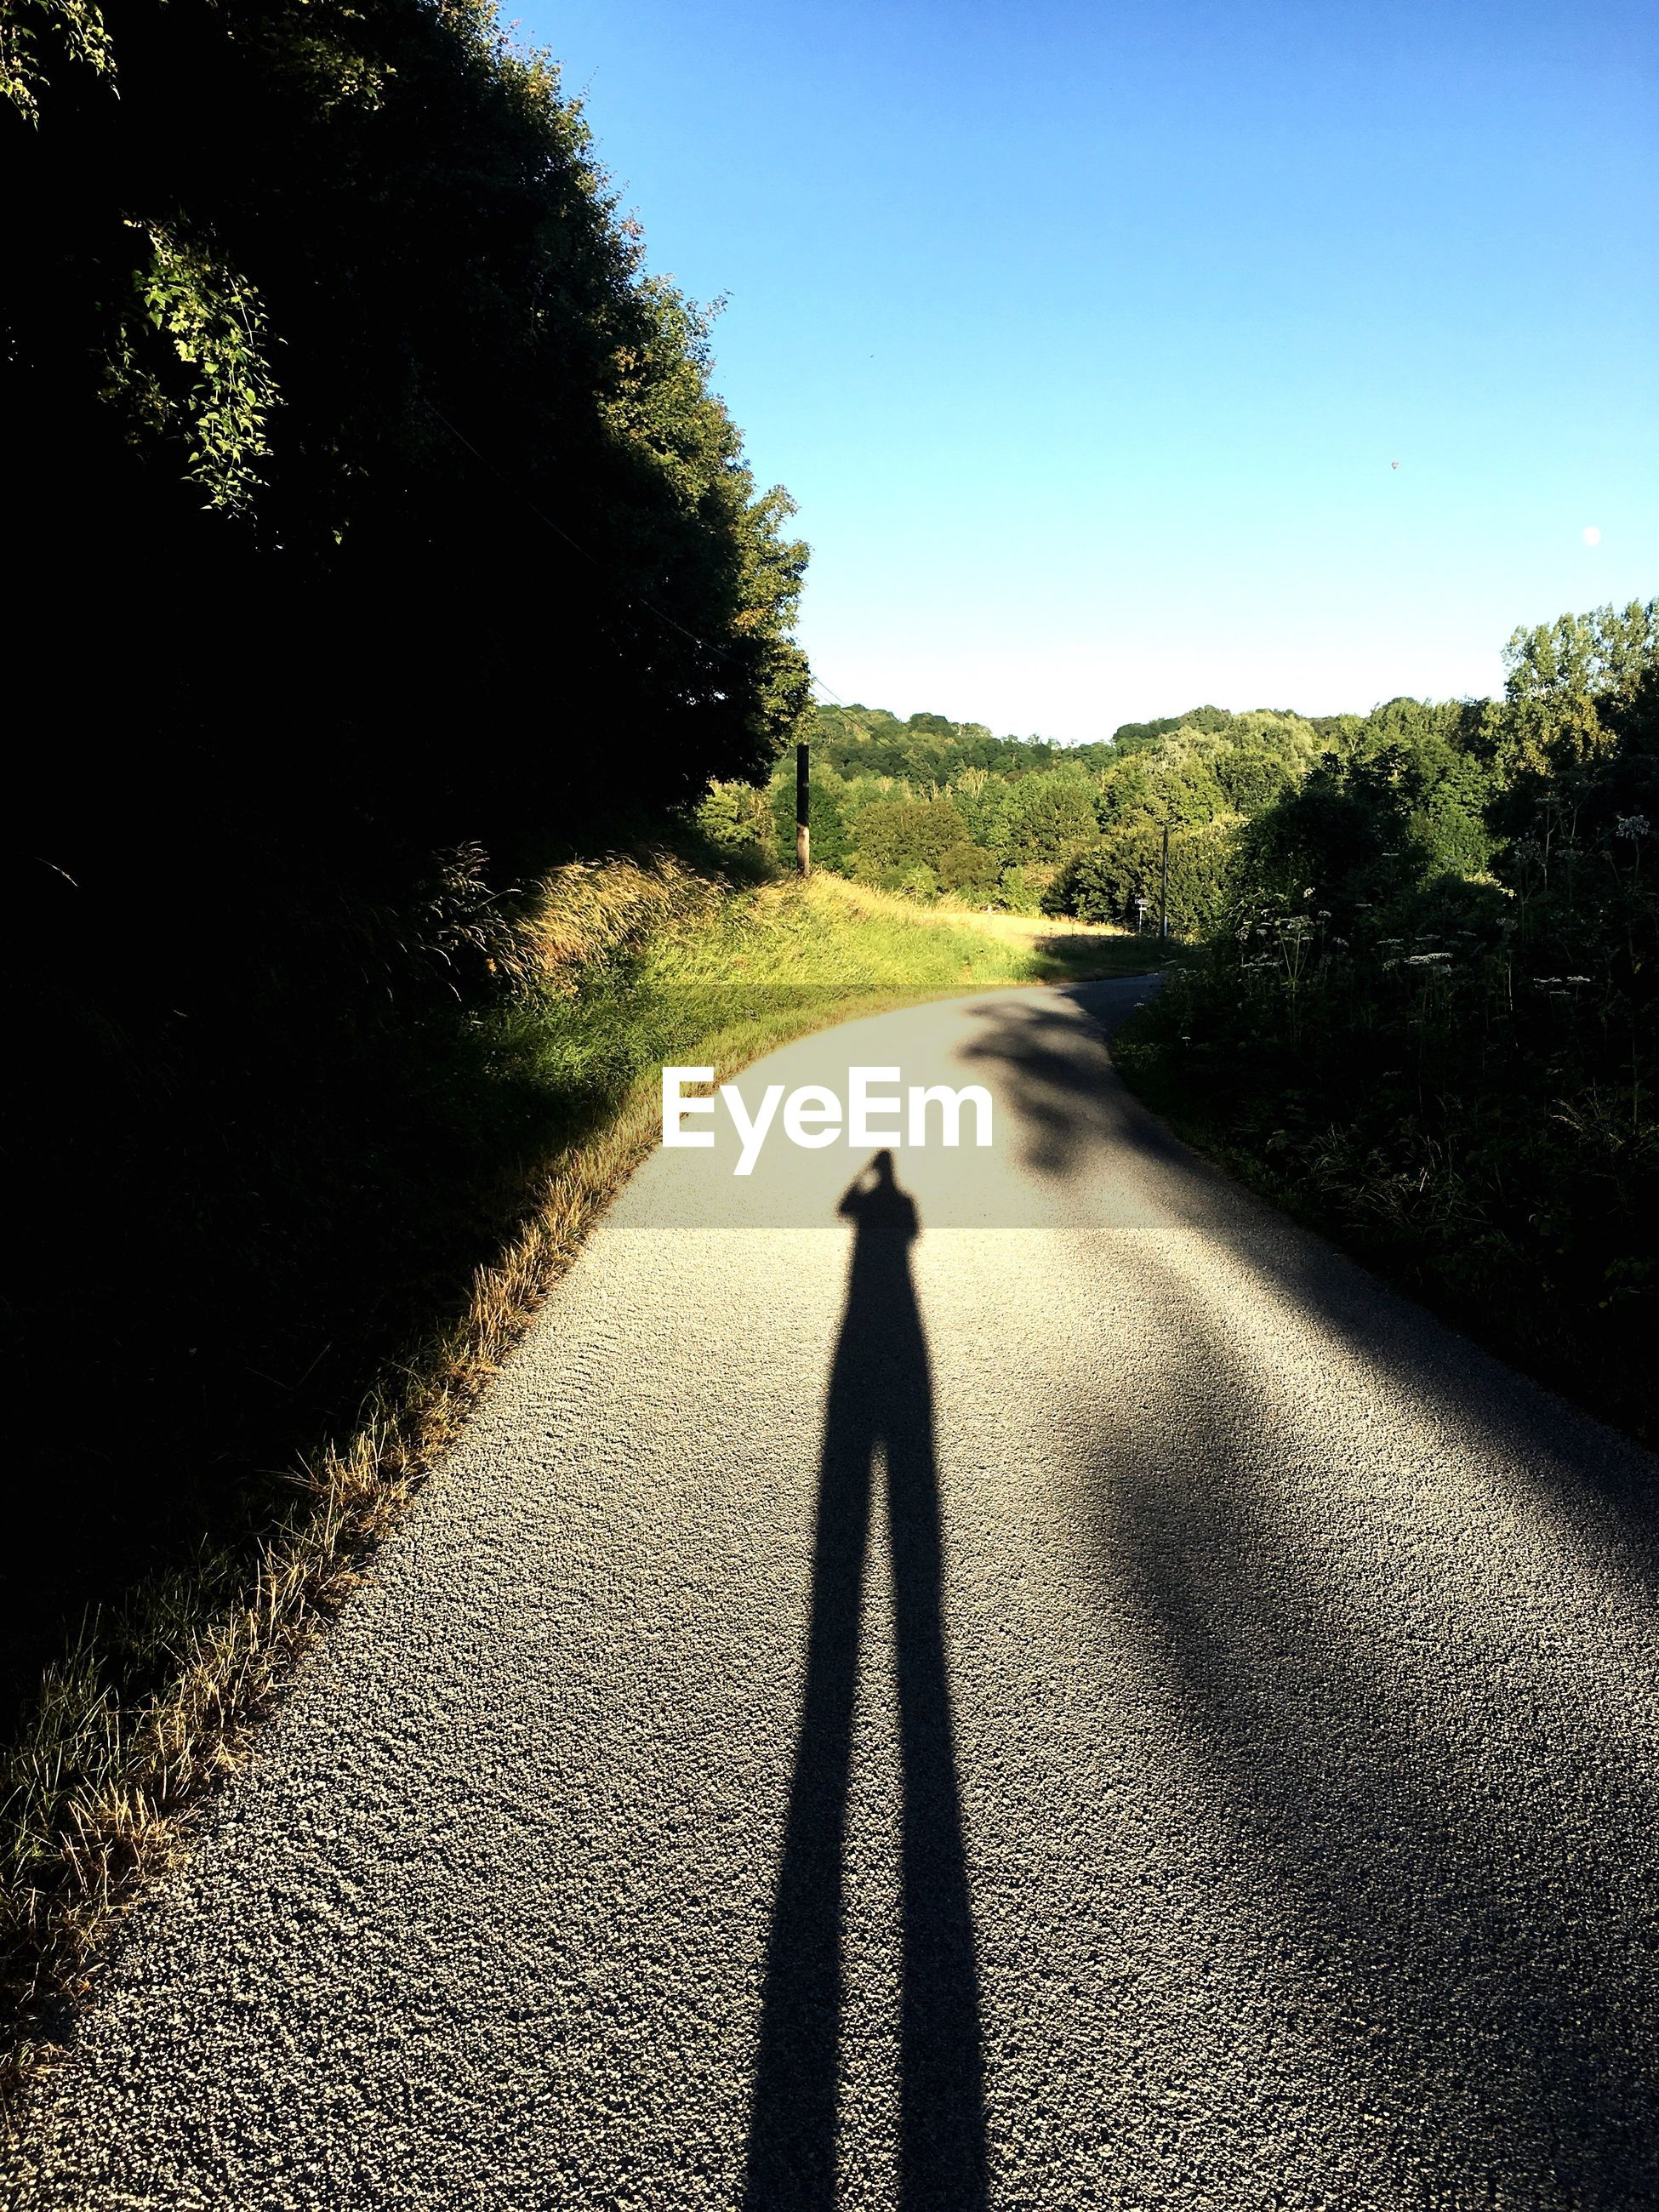 Shadow of person walking on road